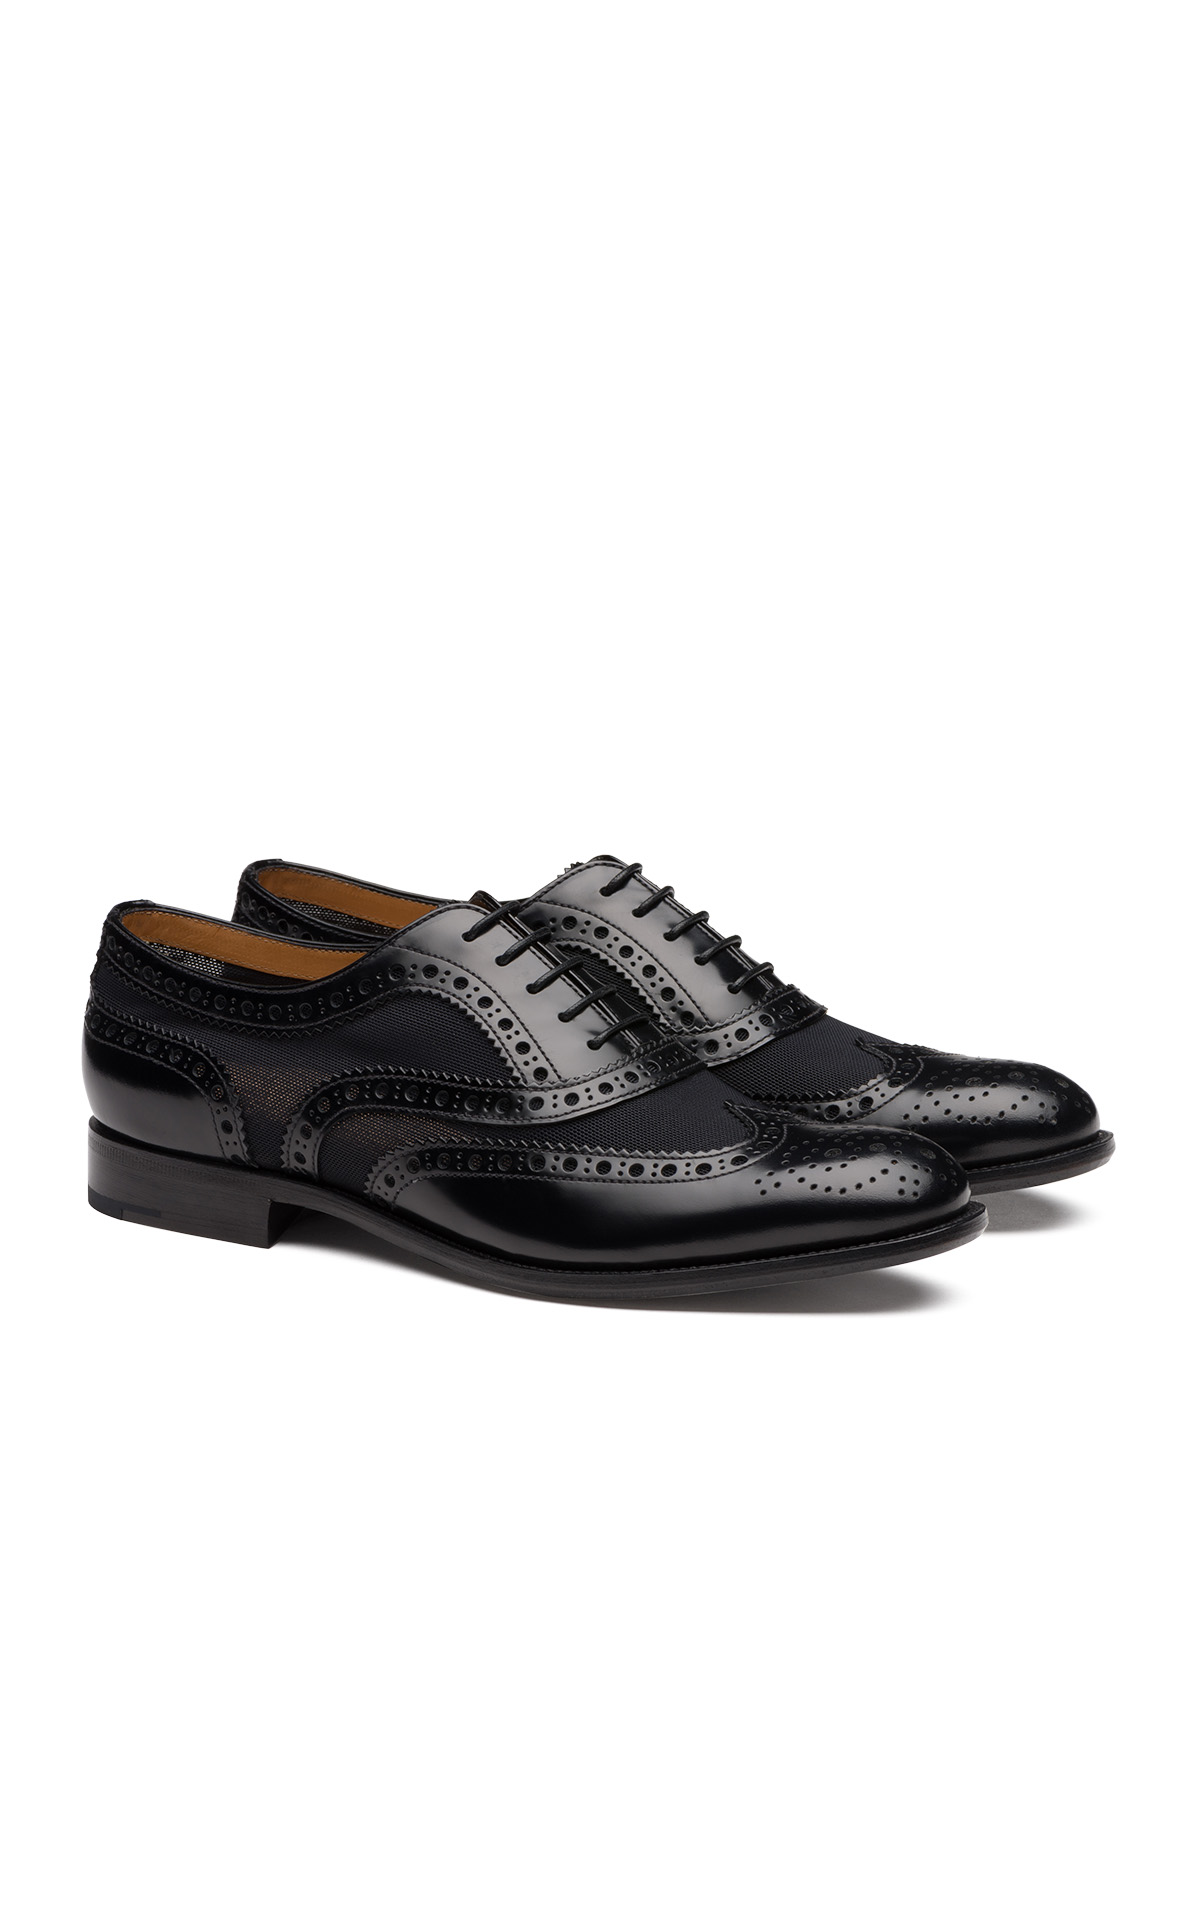 Church's Burwood 7 polished fume and mesh black from Bicester Village